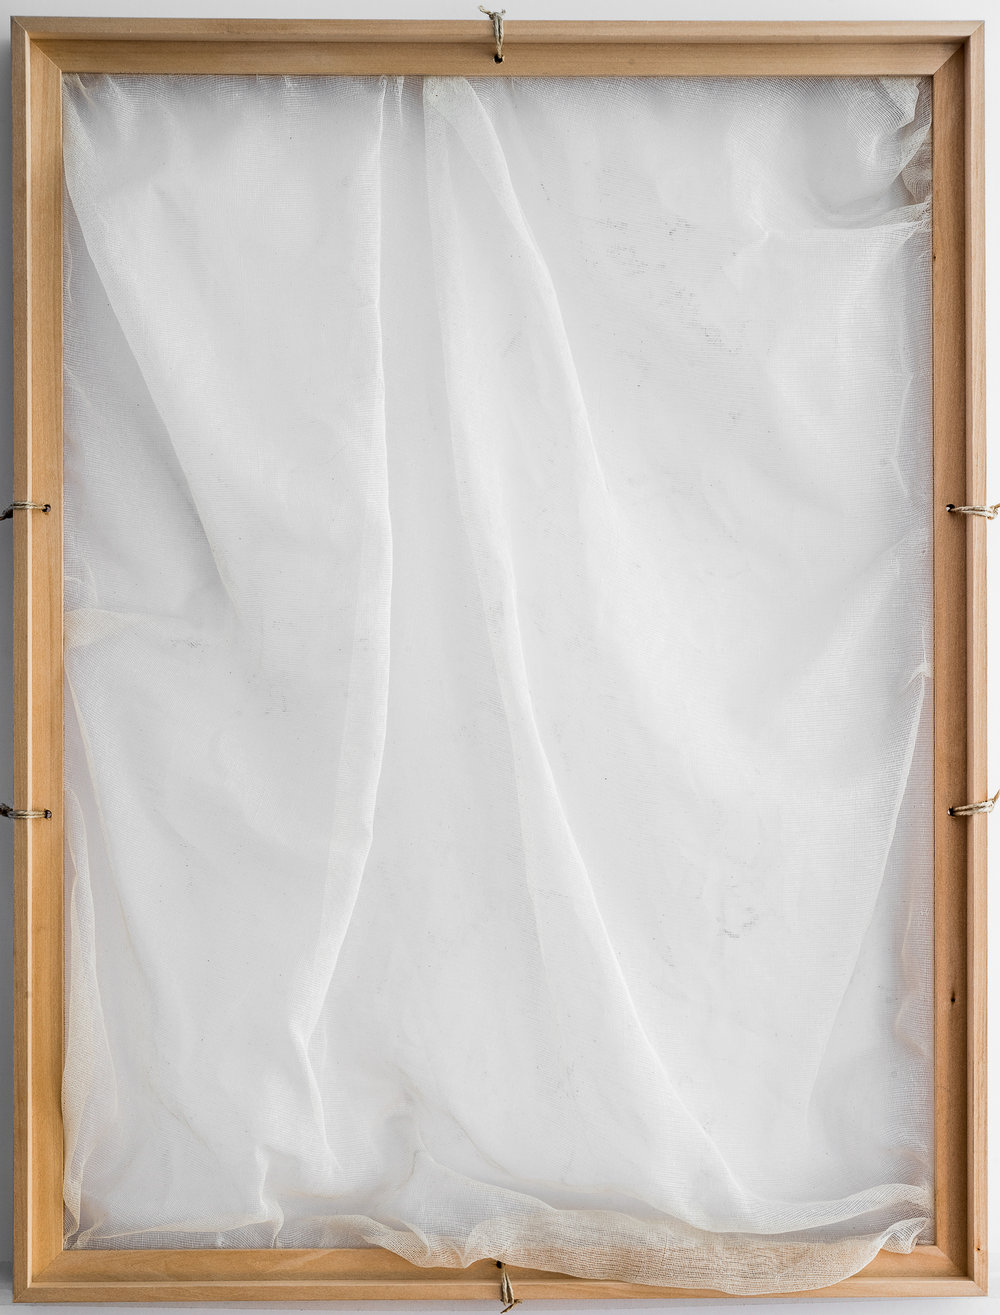 Moment Between Thoughts / Part VI   (2016) Gauze, wooden frame structure. 84 x 64 cm (33 x 25 in.)